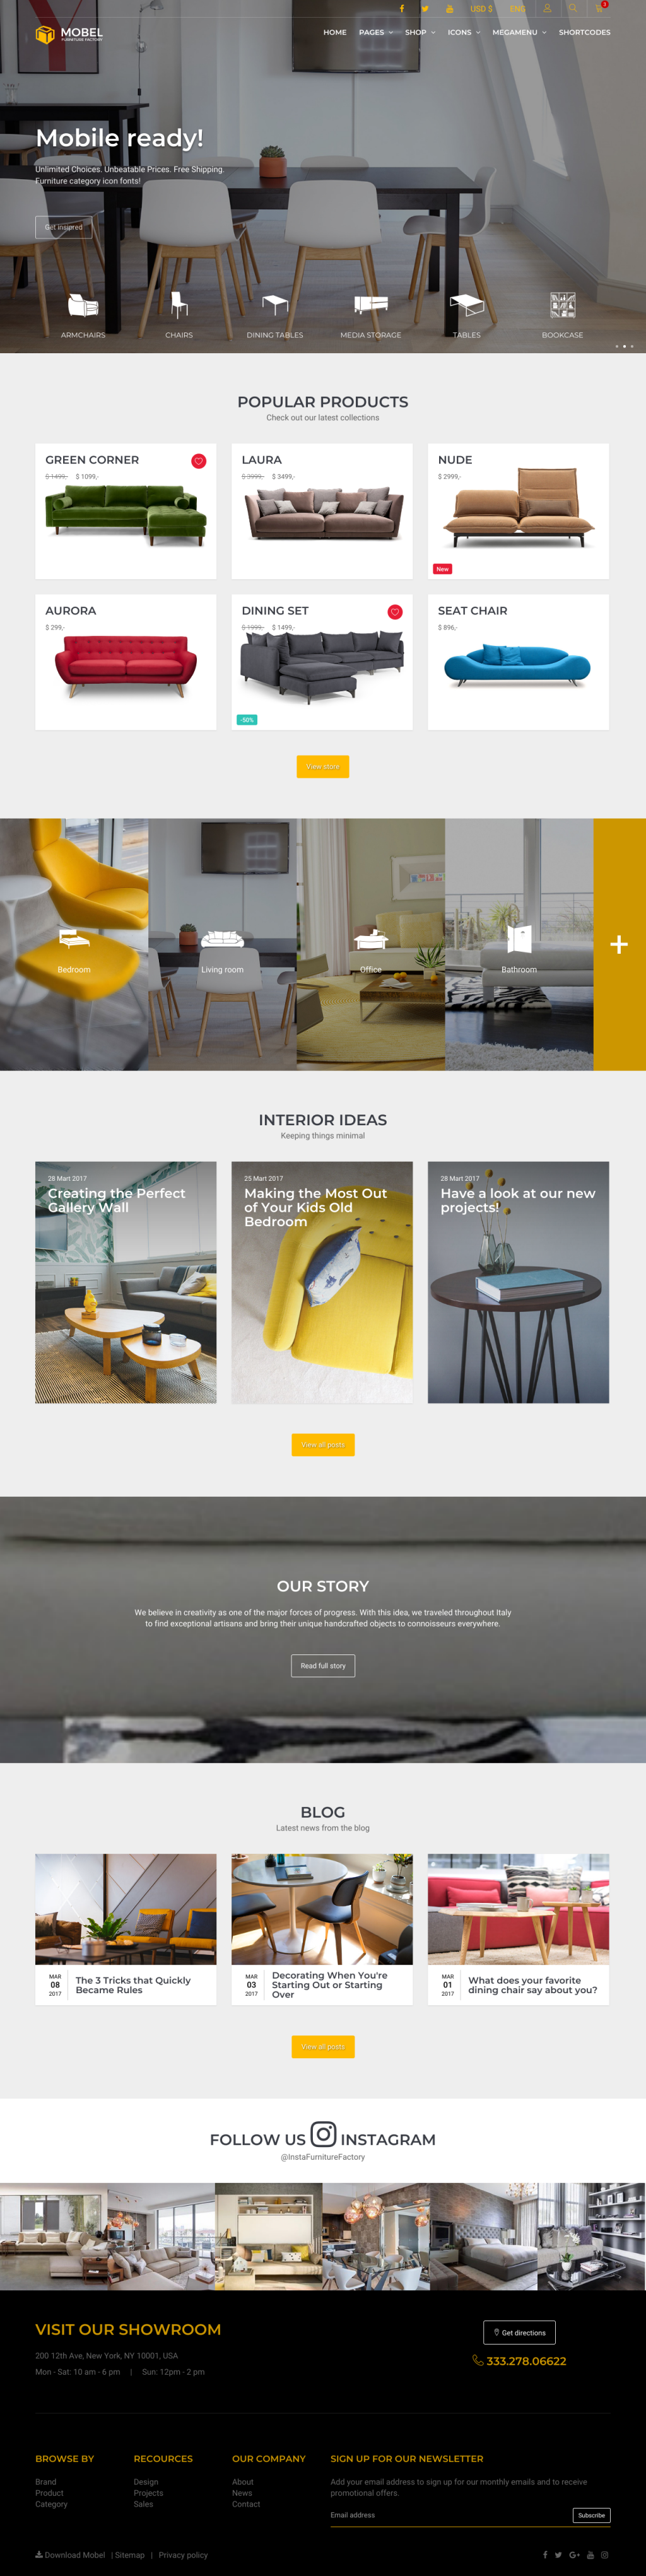 mobel furniture html website template creative decor decoration design exterior factory furniture home house interior modern portfolio shop